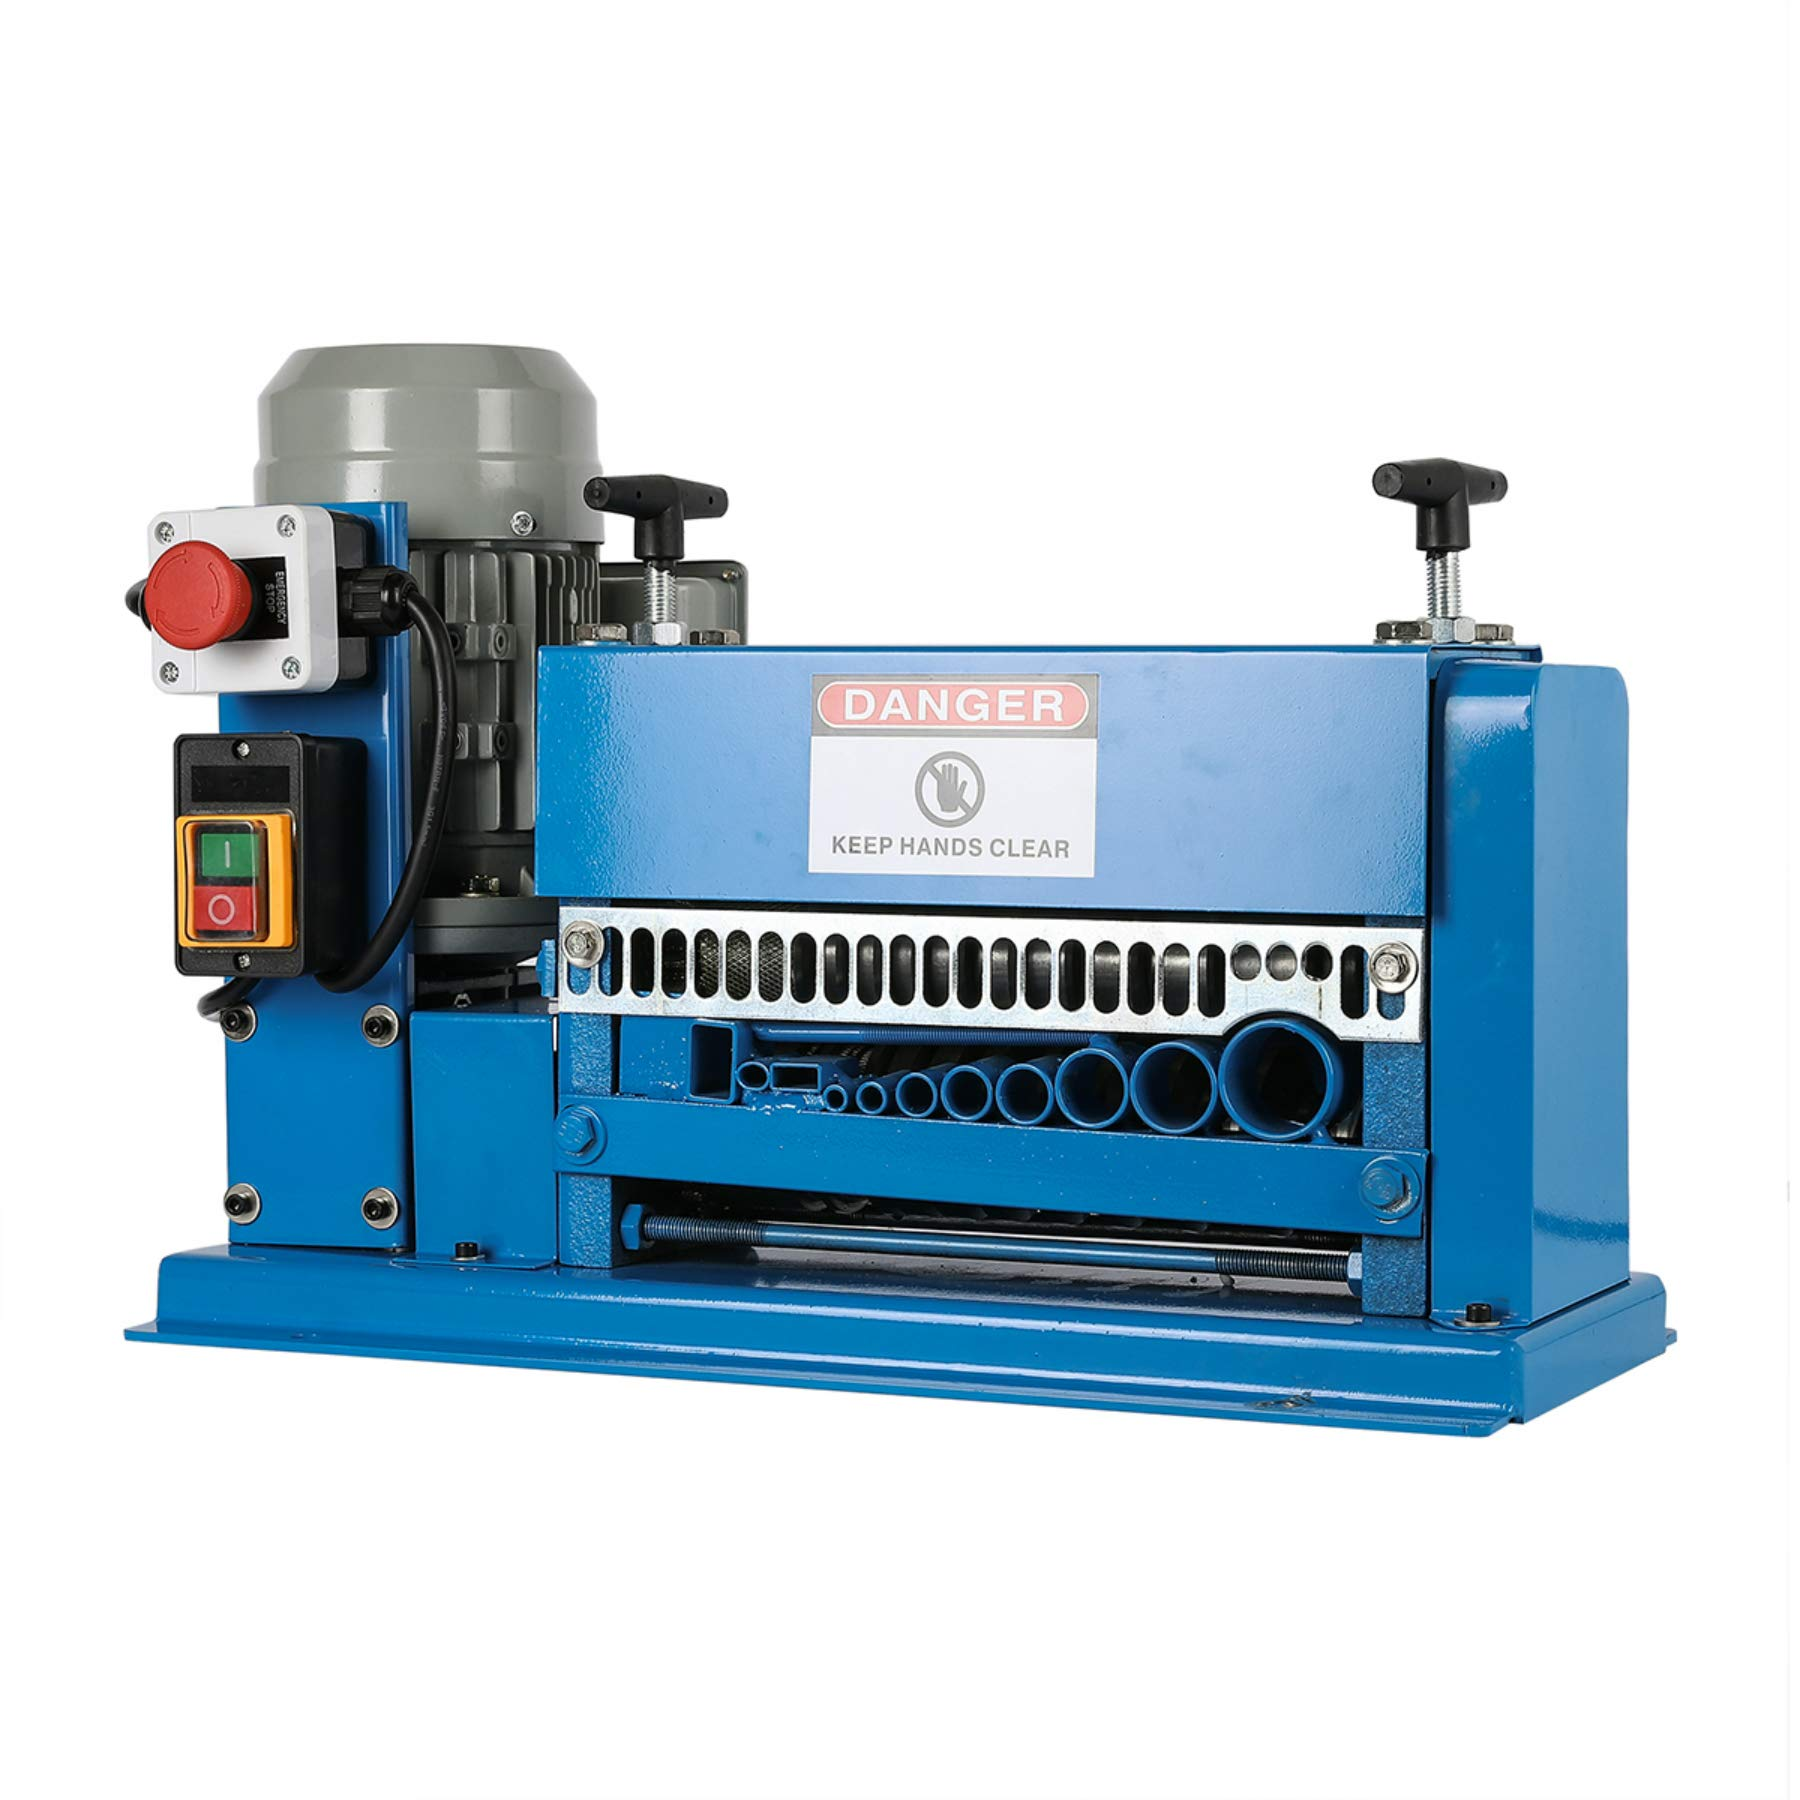 CO-Z Wire Stripping Machine 1.5mm to 38mm Diameter with 11 Channels Wire Stripping Machine Tool Manual Hand Cranked Industrial Wire Stripping Equipment by CO-Z